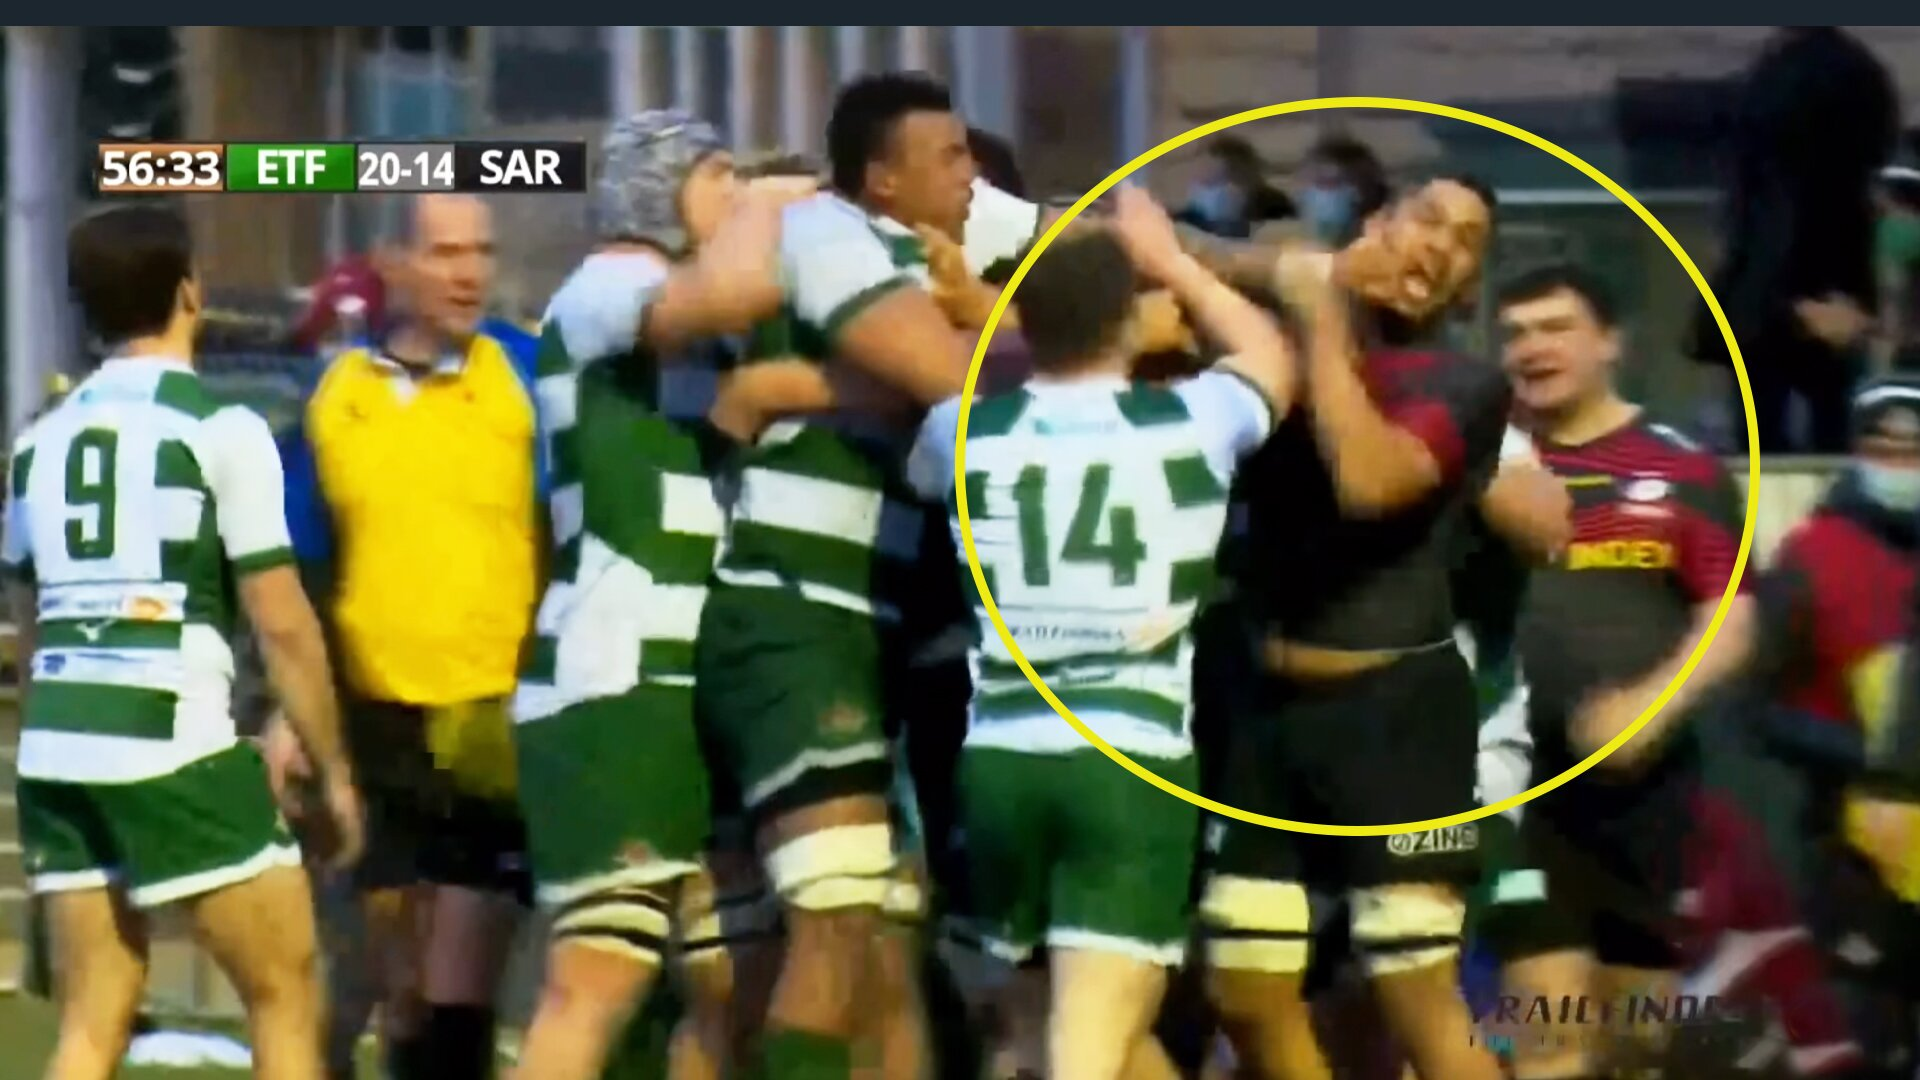 Mass brawl spills over into stands as Ealing Trailfinders stun Saracens with shock win